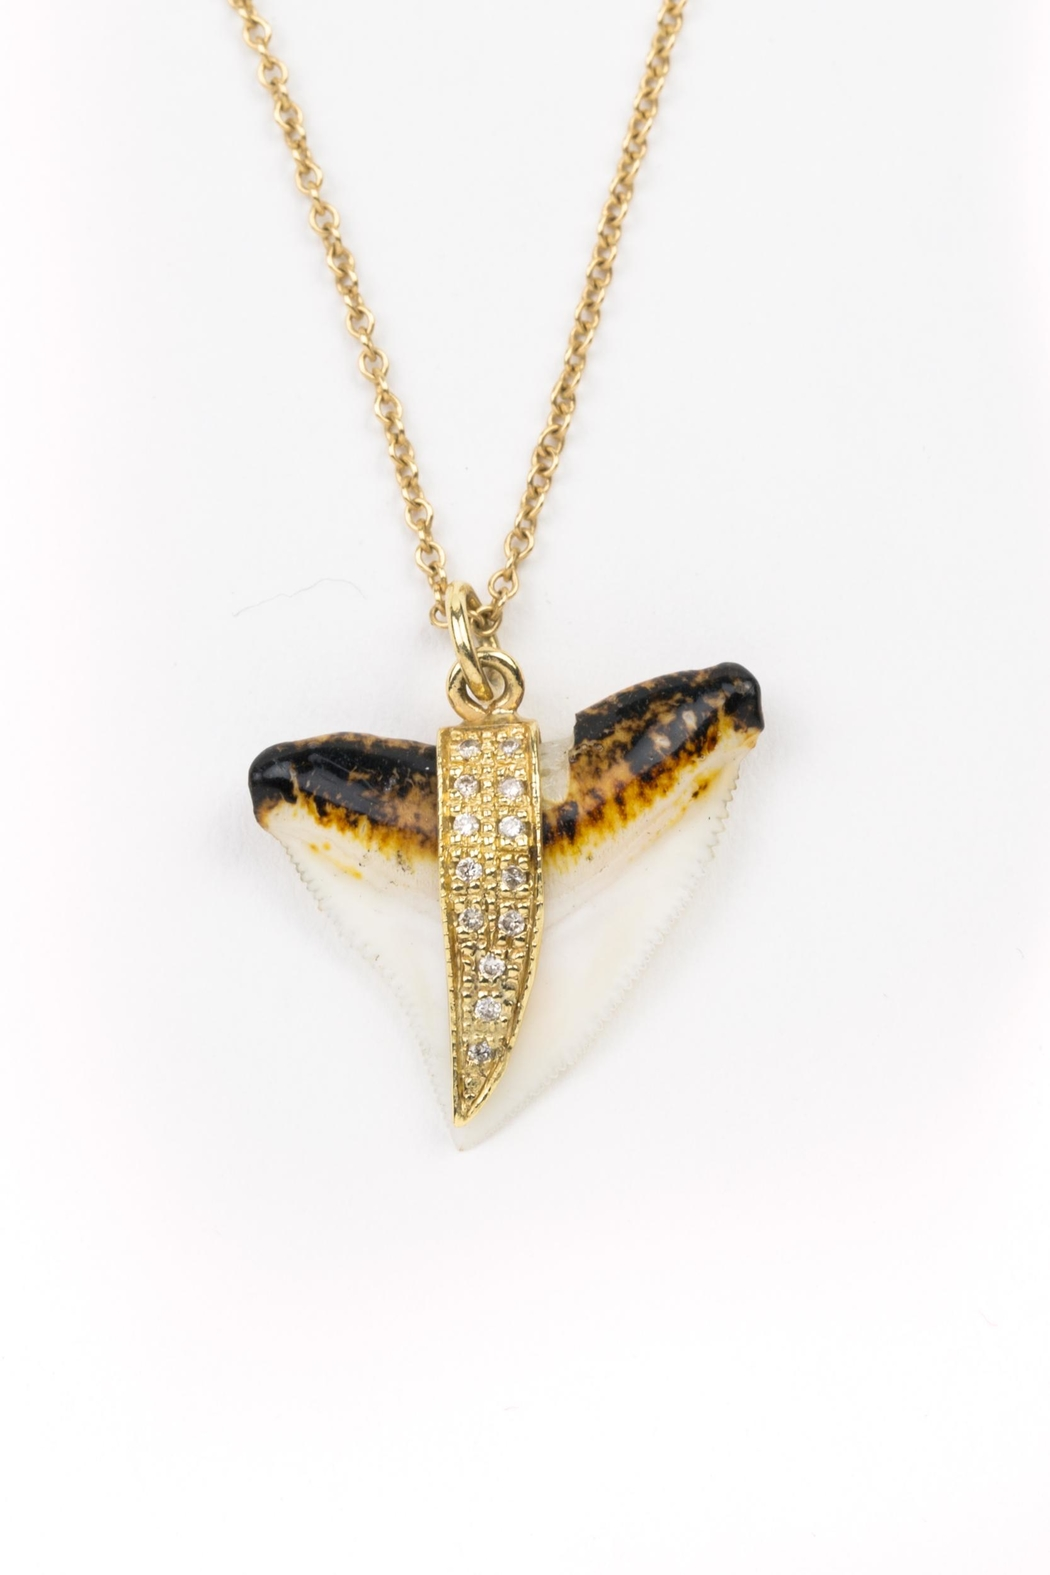 sand necklace tooth tiger for com fossils sale pendant fossilera fossil carcharias shark taurus